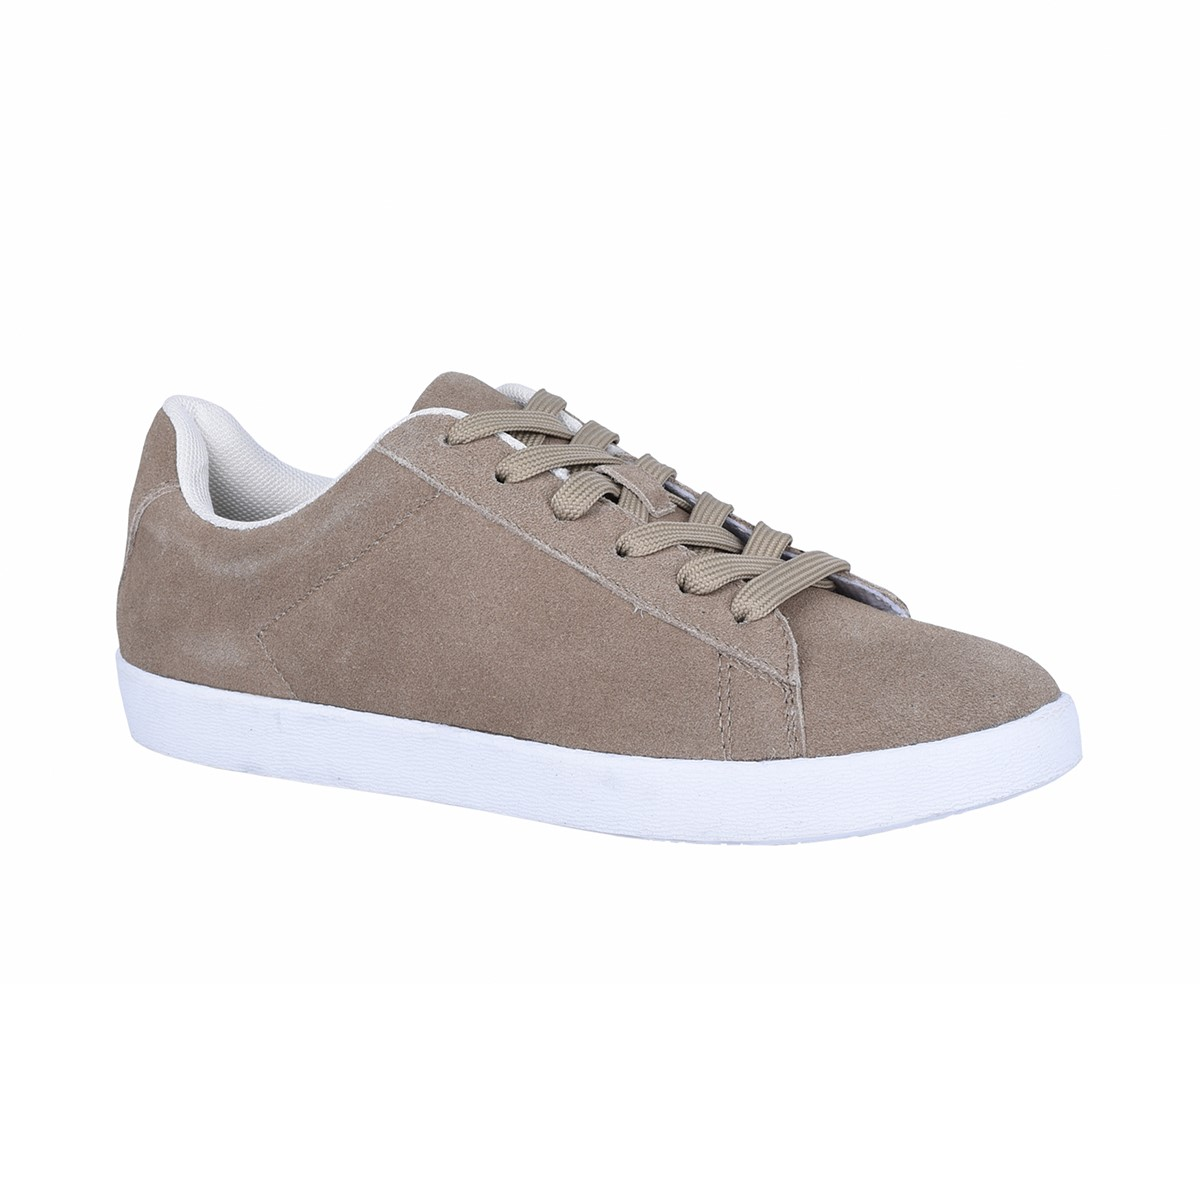 Femmes Natural Comfort Josie Beige Suede blanc Casual Laces Comfortable chaussures